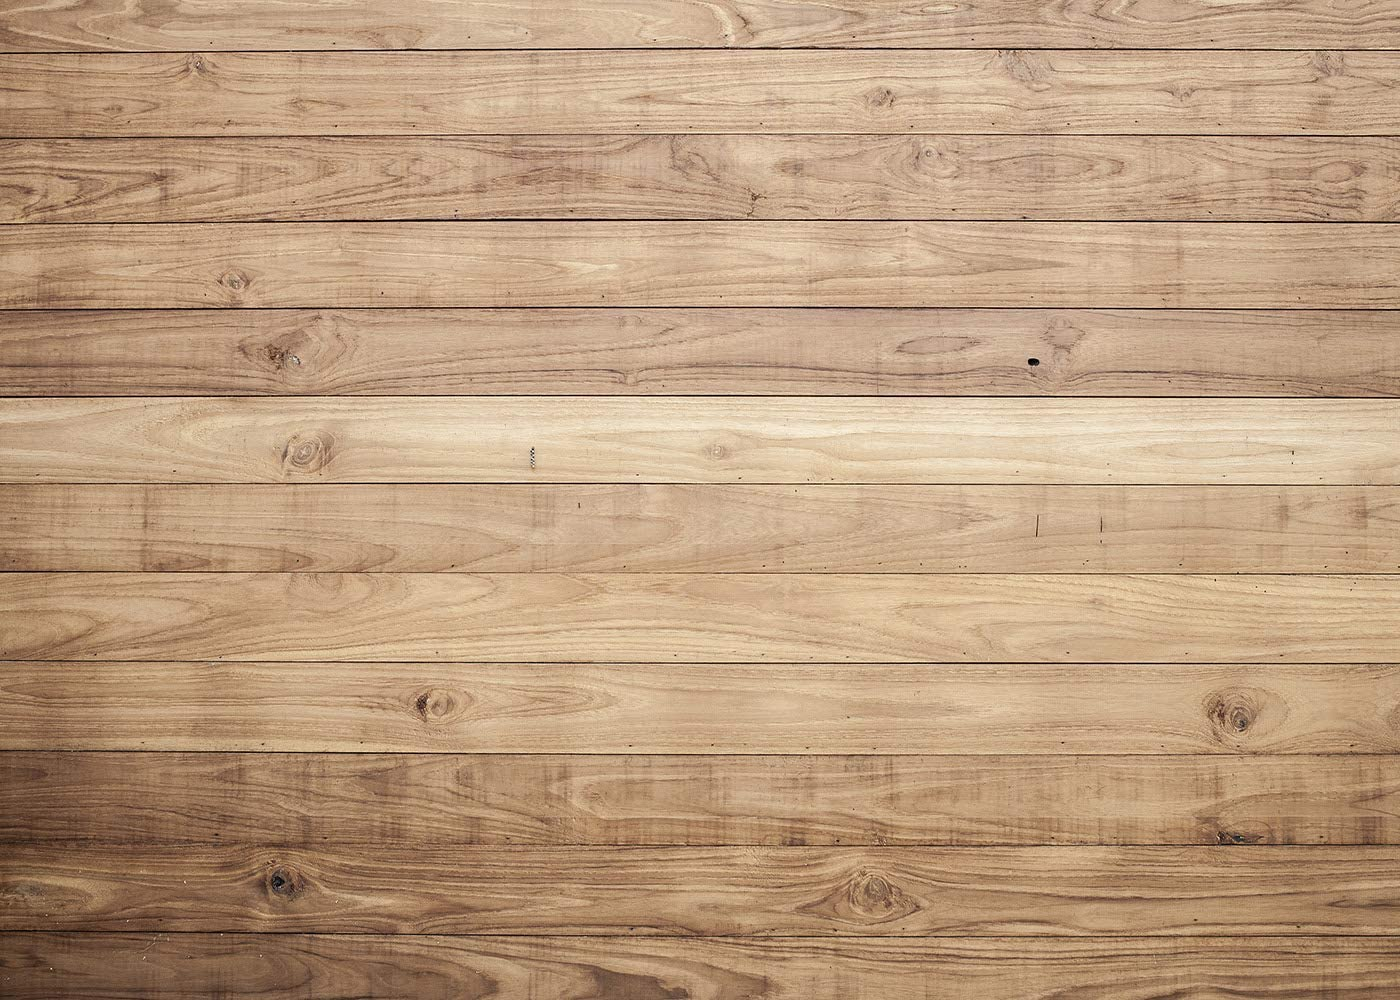 DULUDA 7X5FT Brown Wood Floor Pattern Photography Backdrop Baby Shower Party Background Banner Cake Table Decoration Photo Booth Prop MT43